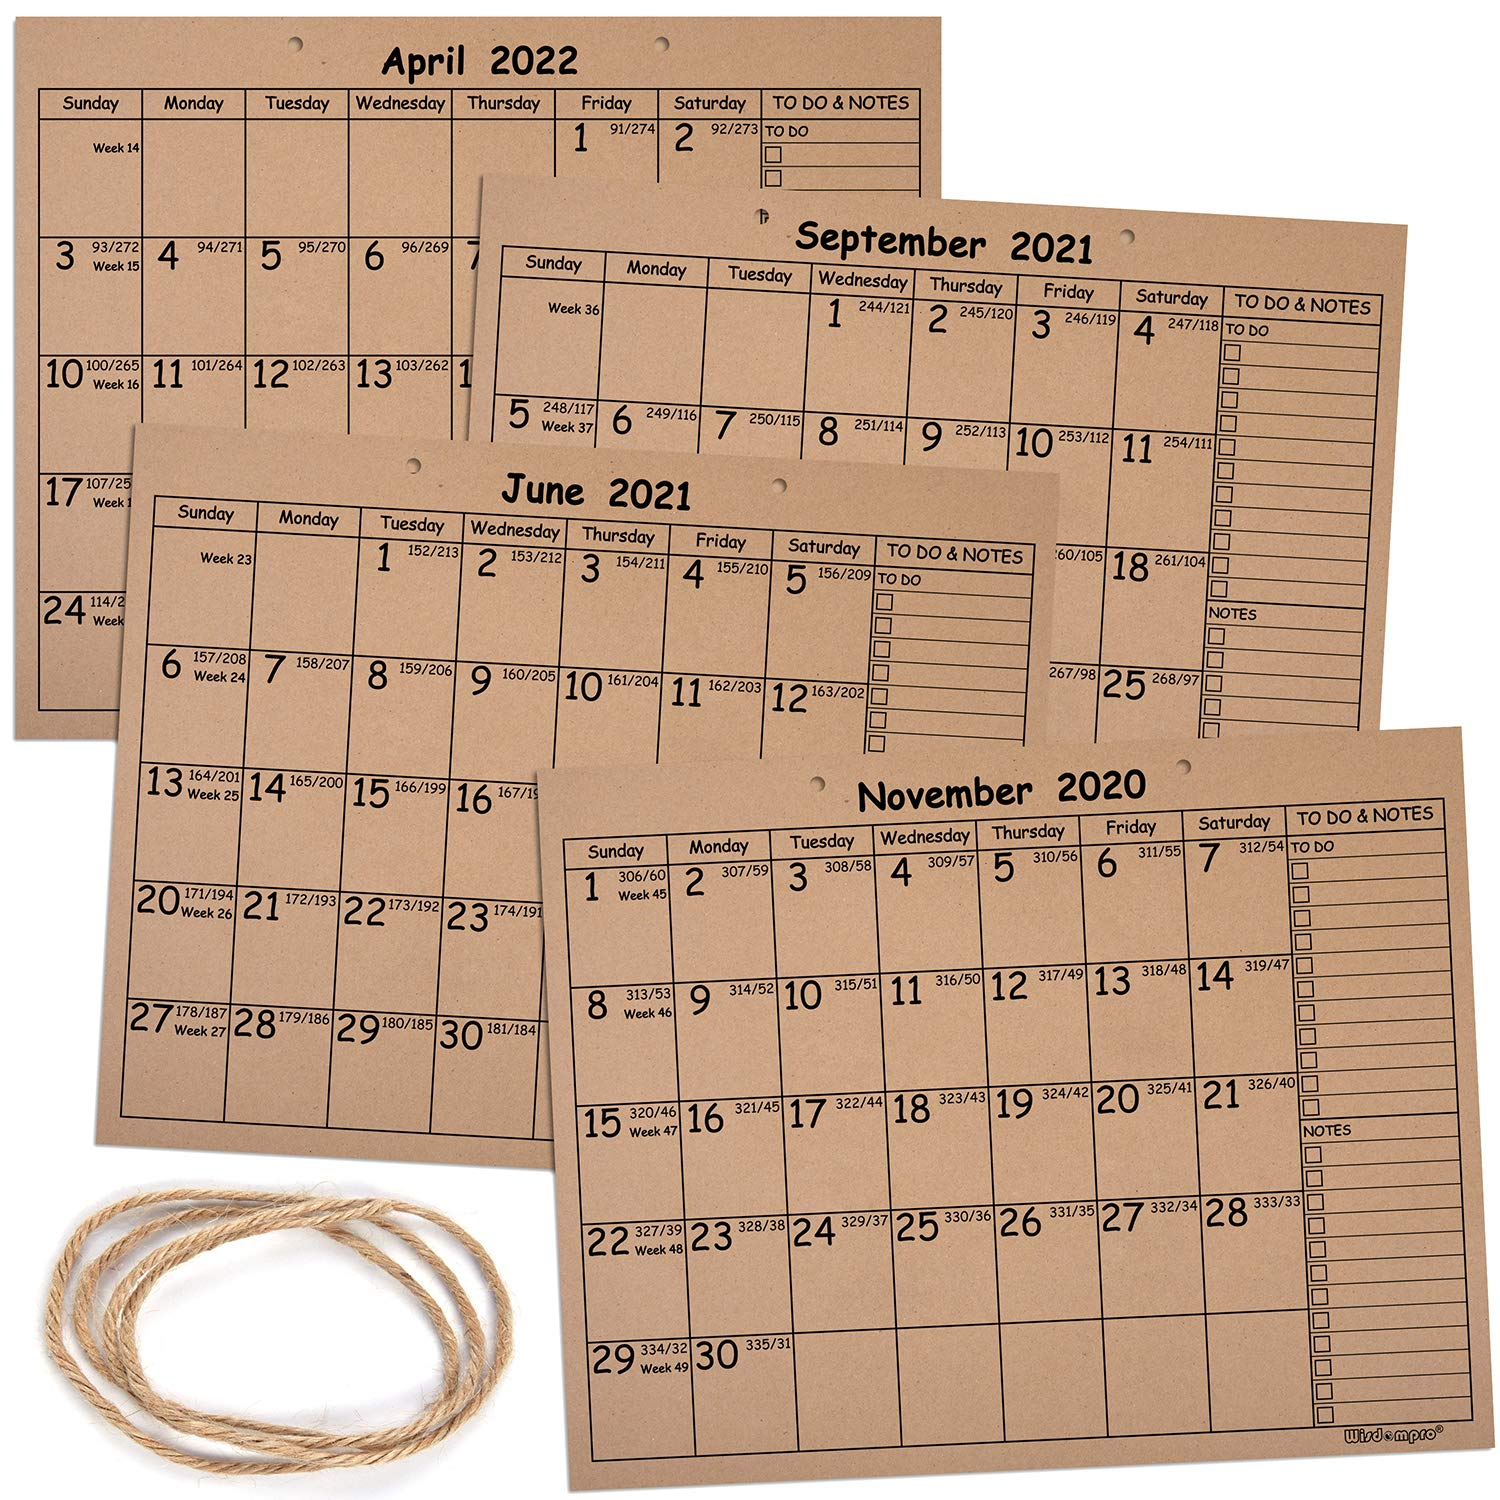 2022 Nov Calendar.Kraft Desk Calendar 2020 2022 Wisdompro Monthly And Weekly Rustic Julian Wall Calendar Planner 18 Months Nov 2020 Apr 2022 With Planning Blotter Pad 11 2 X 14 3 Inches Amazon In Office Products